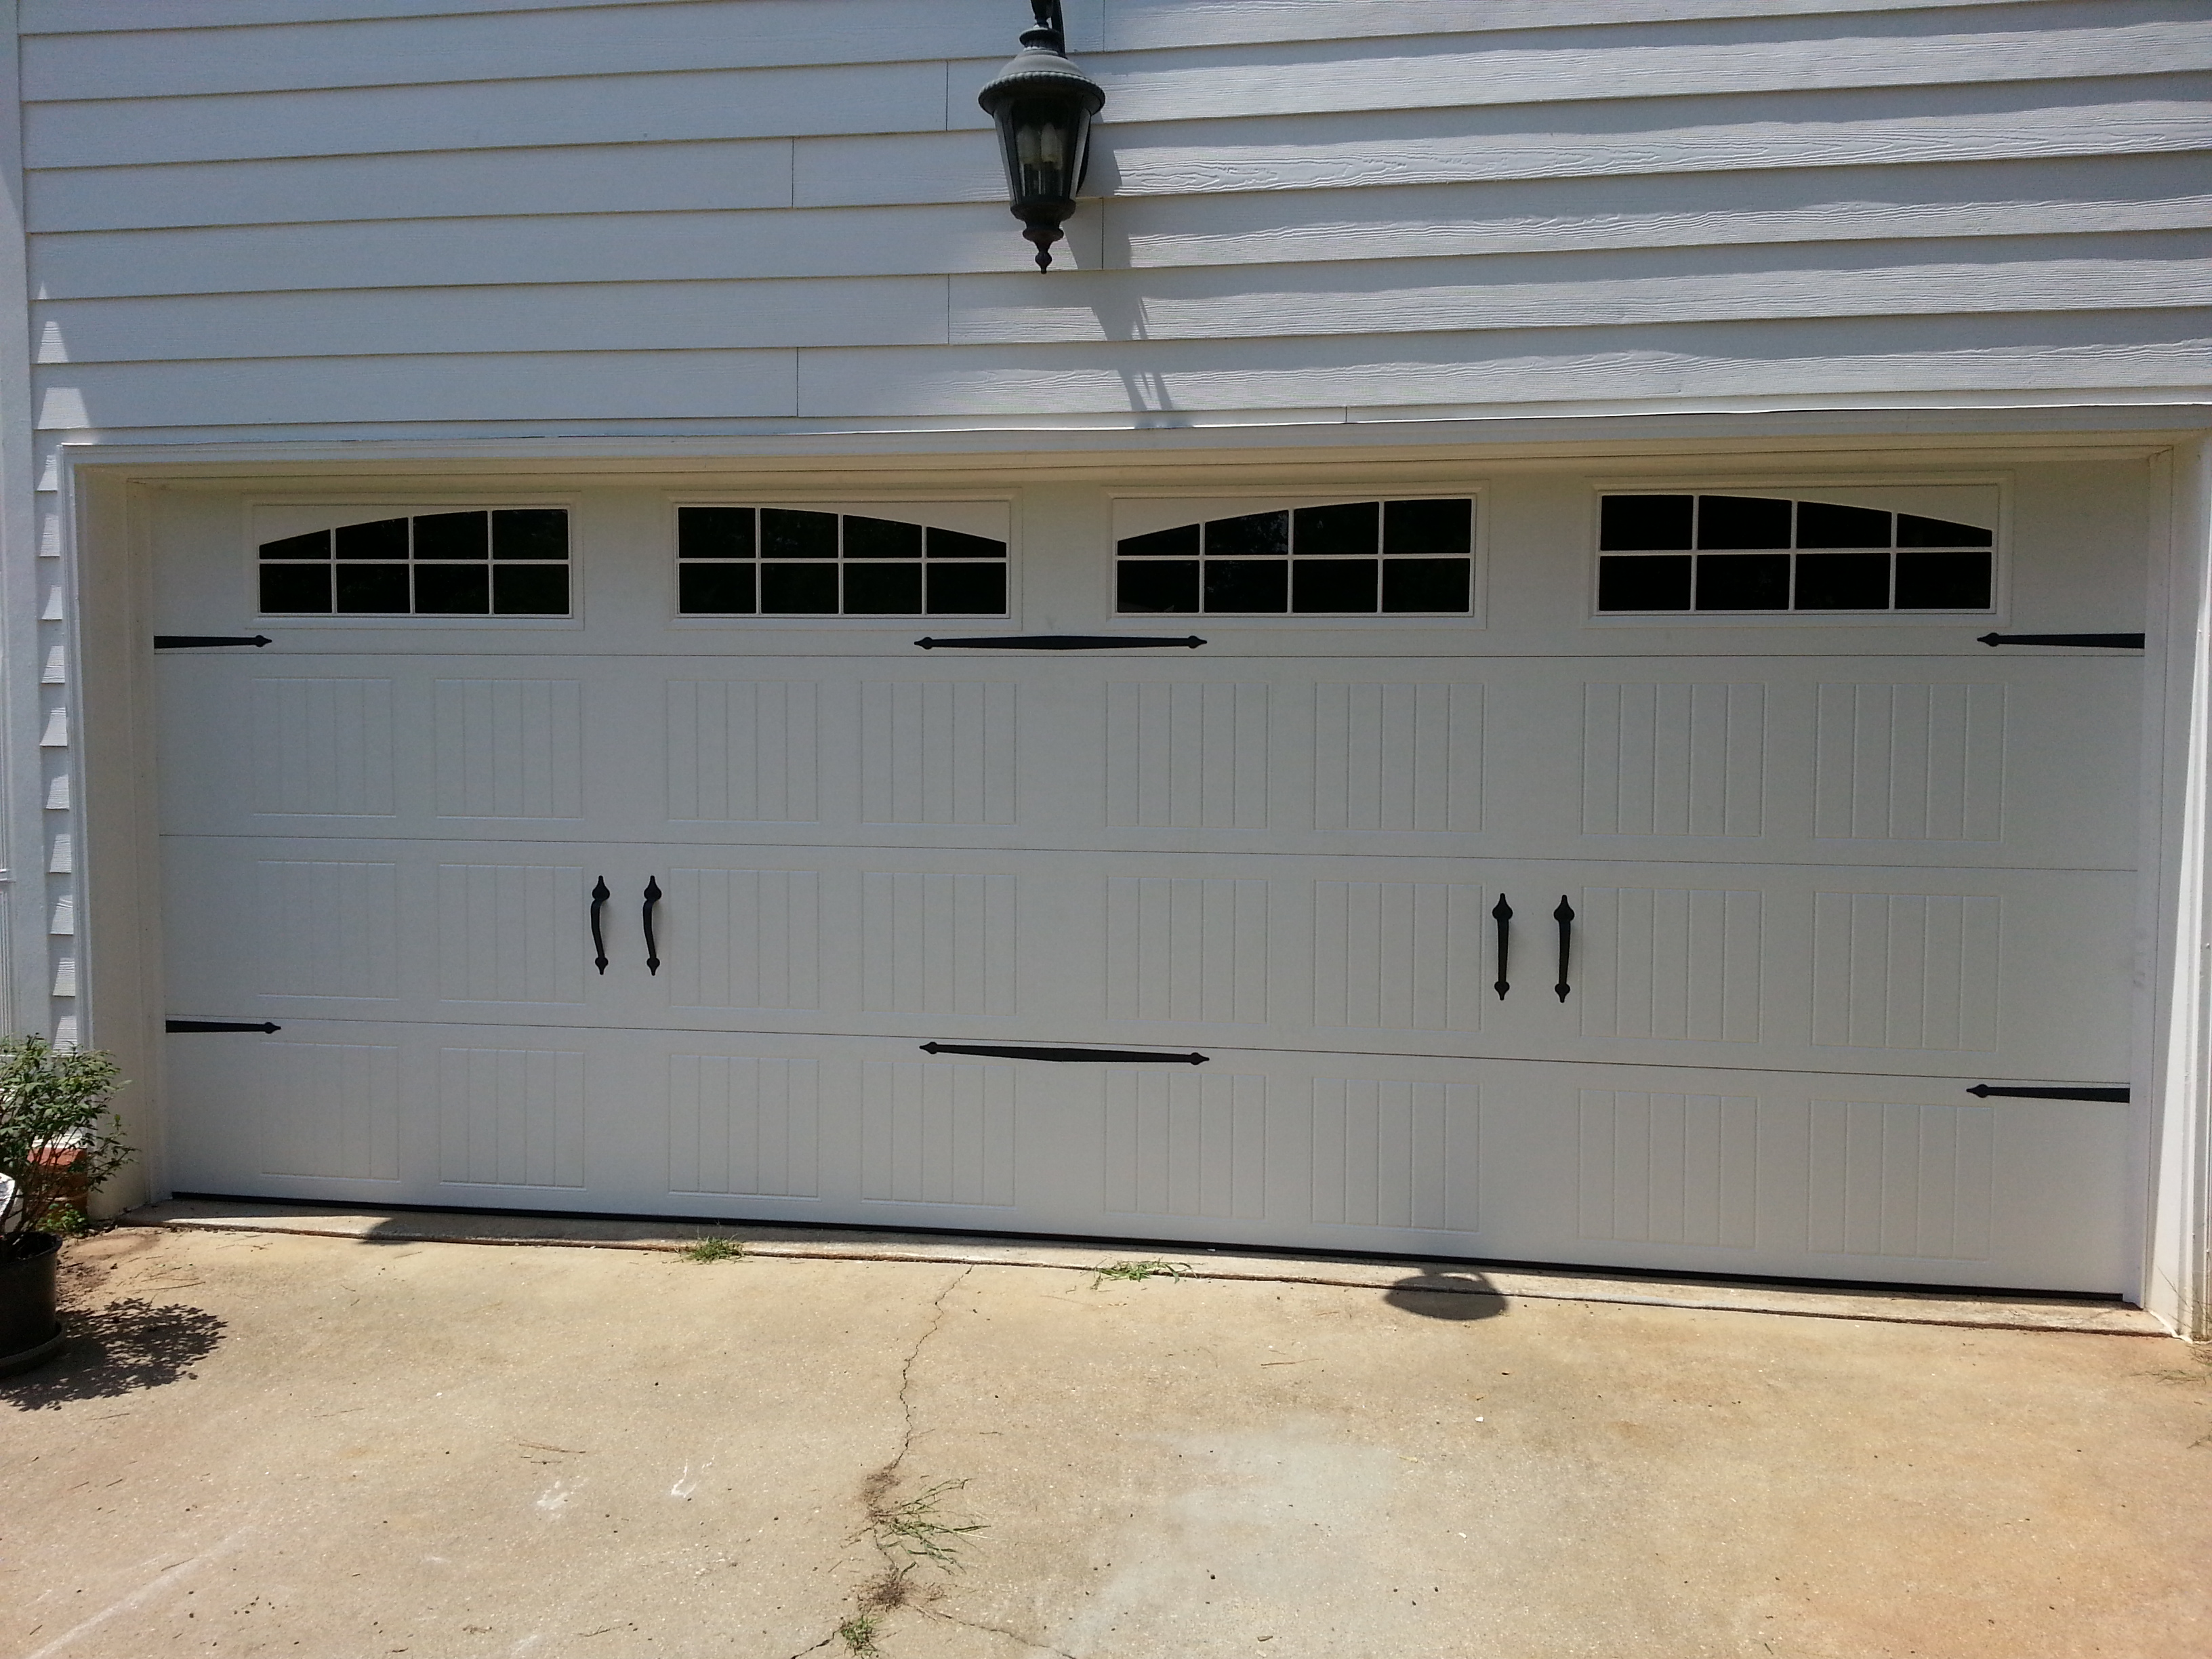 Etonnant Smyrna GA Garage Door Repair Services. At Smyrna , GA Garage Door Repair.  We Provide An Enormous Assortment Of Services And Categories Designed To  Cater ...